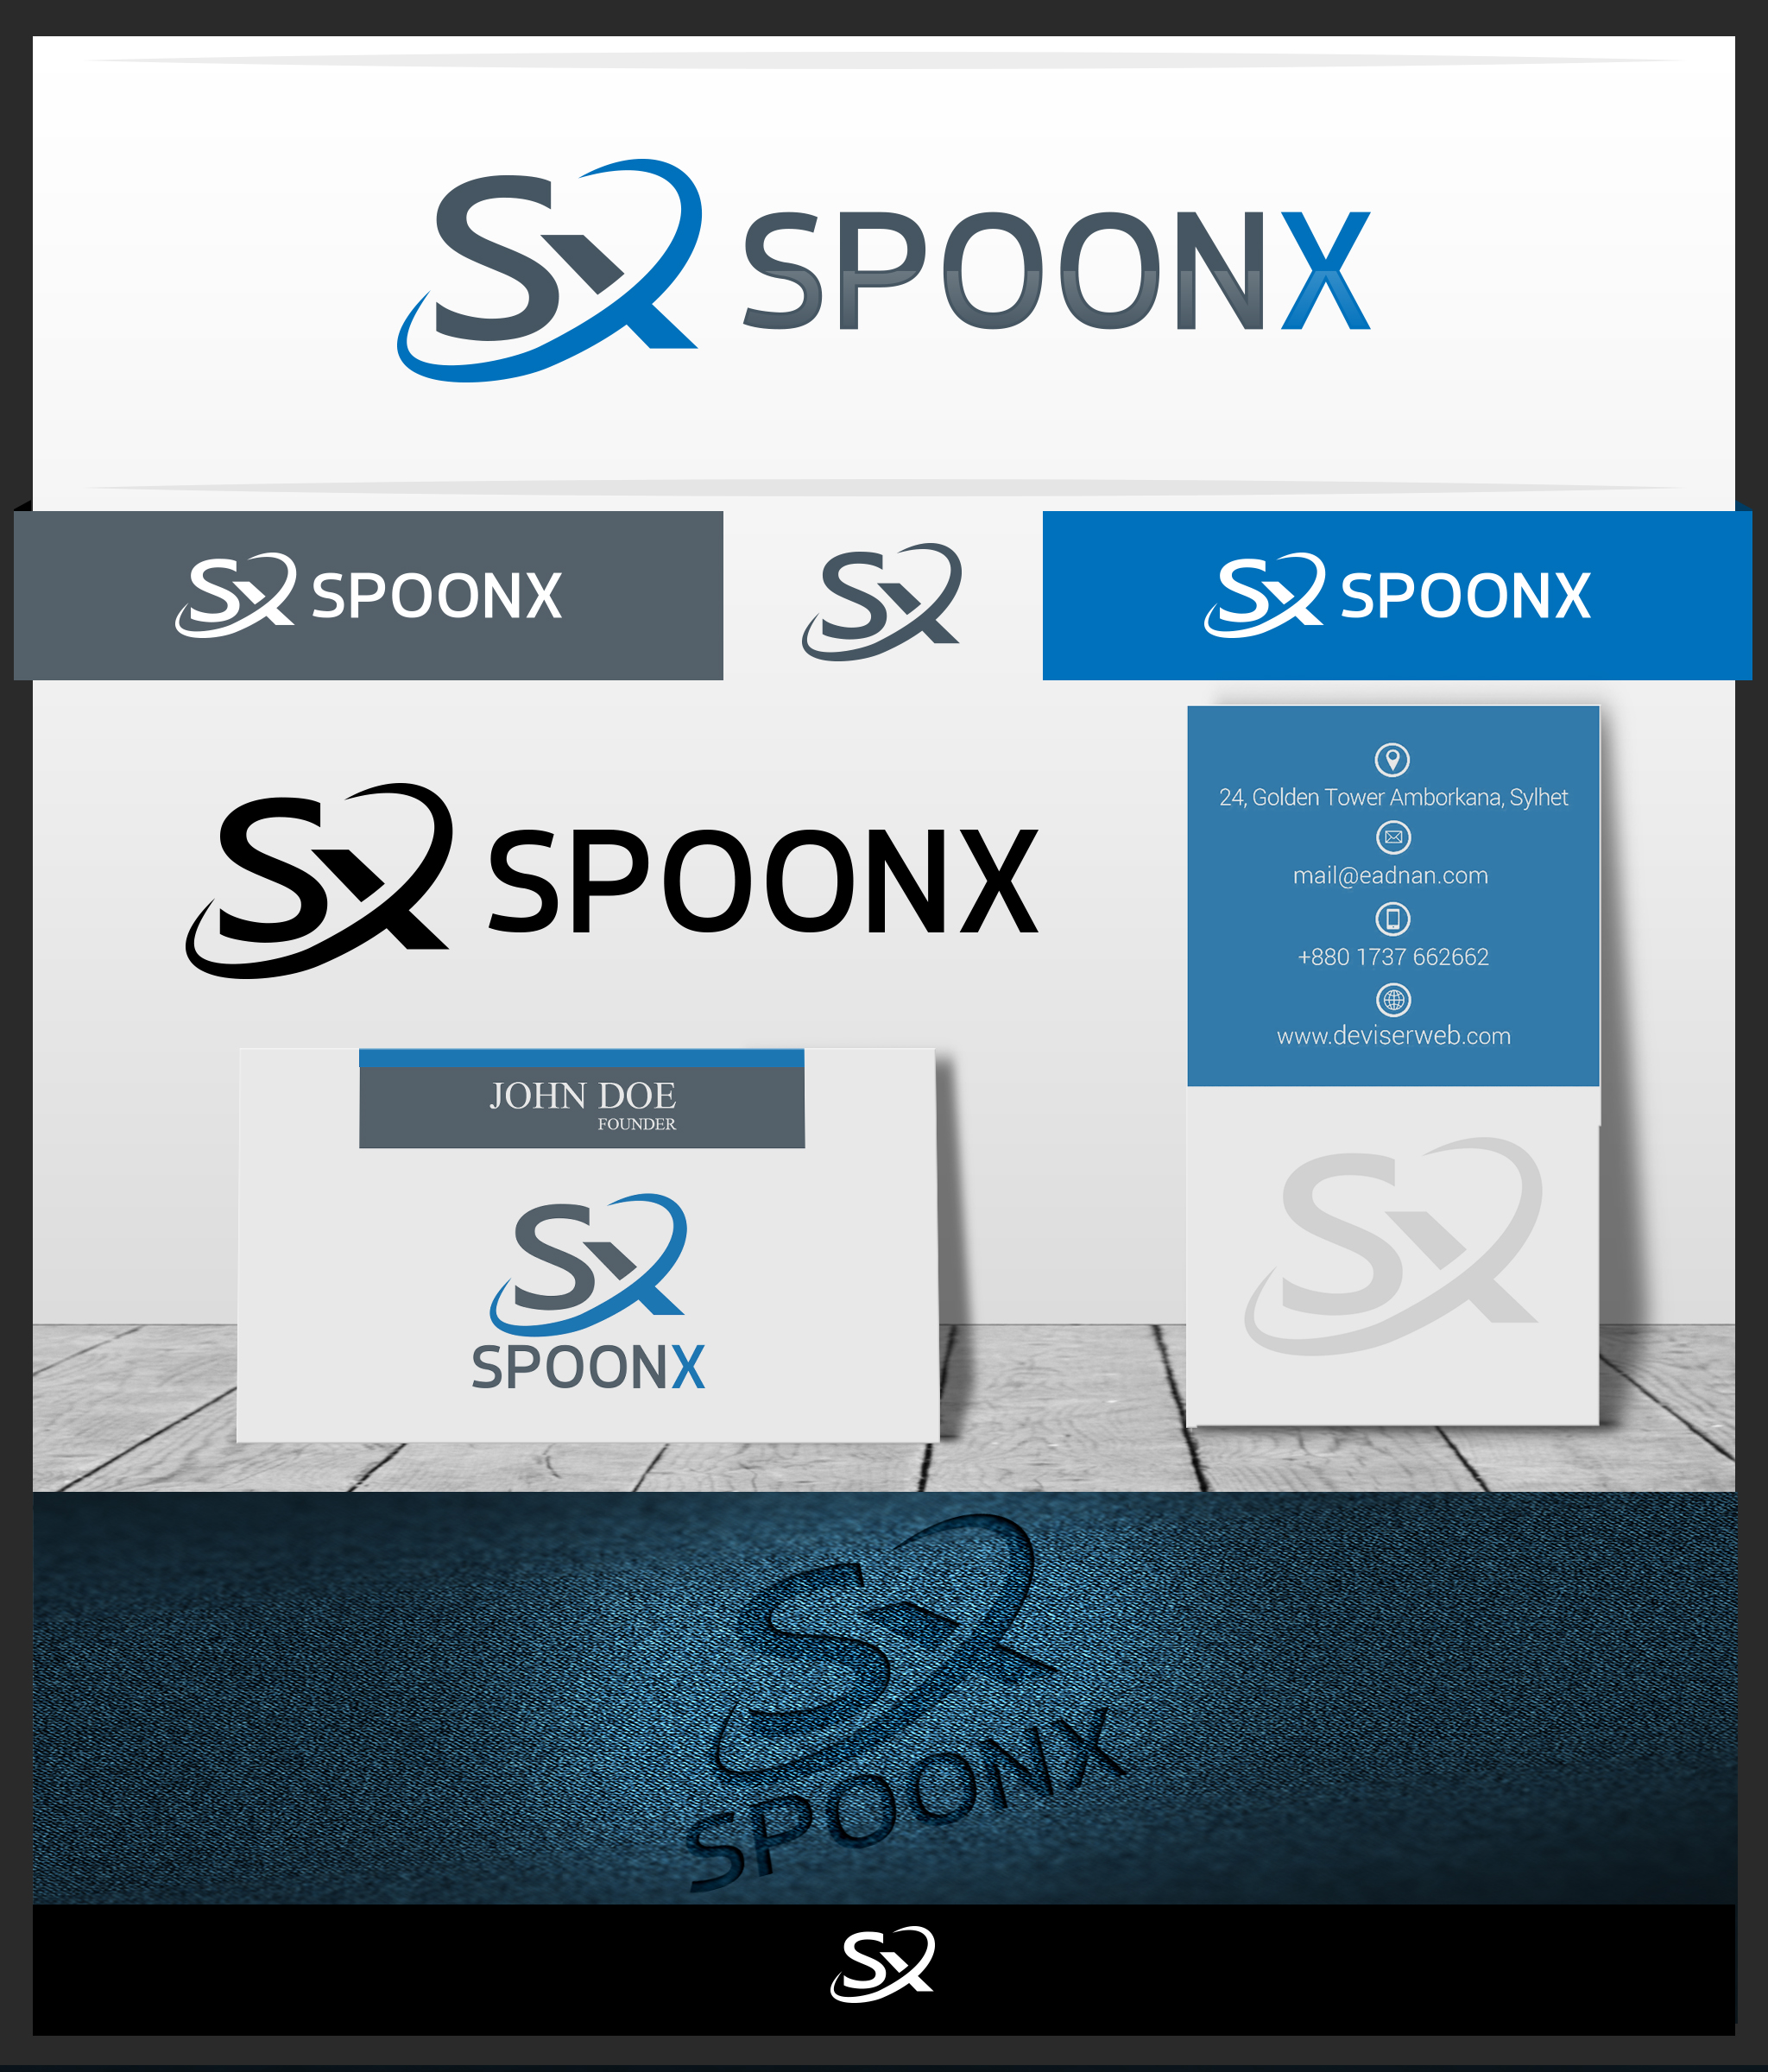 Logo Design by Avinu Designs - Entry No. 157 in the Logo Design Contest Captivating Logo Design for SpoonX.